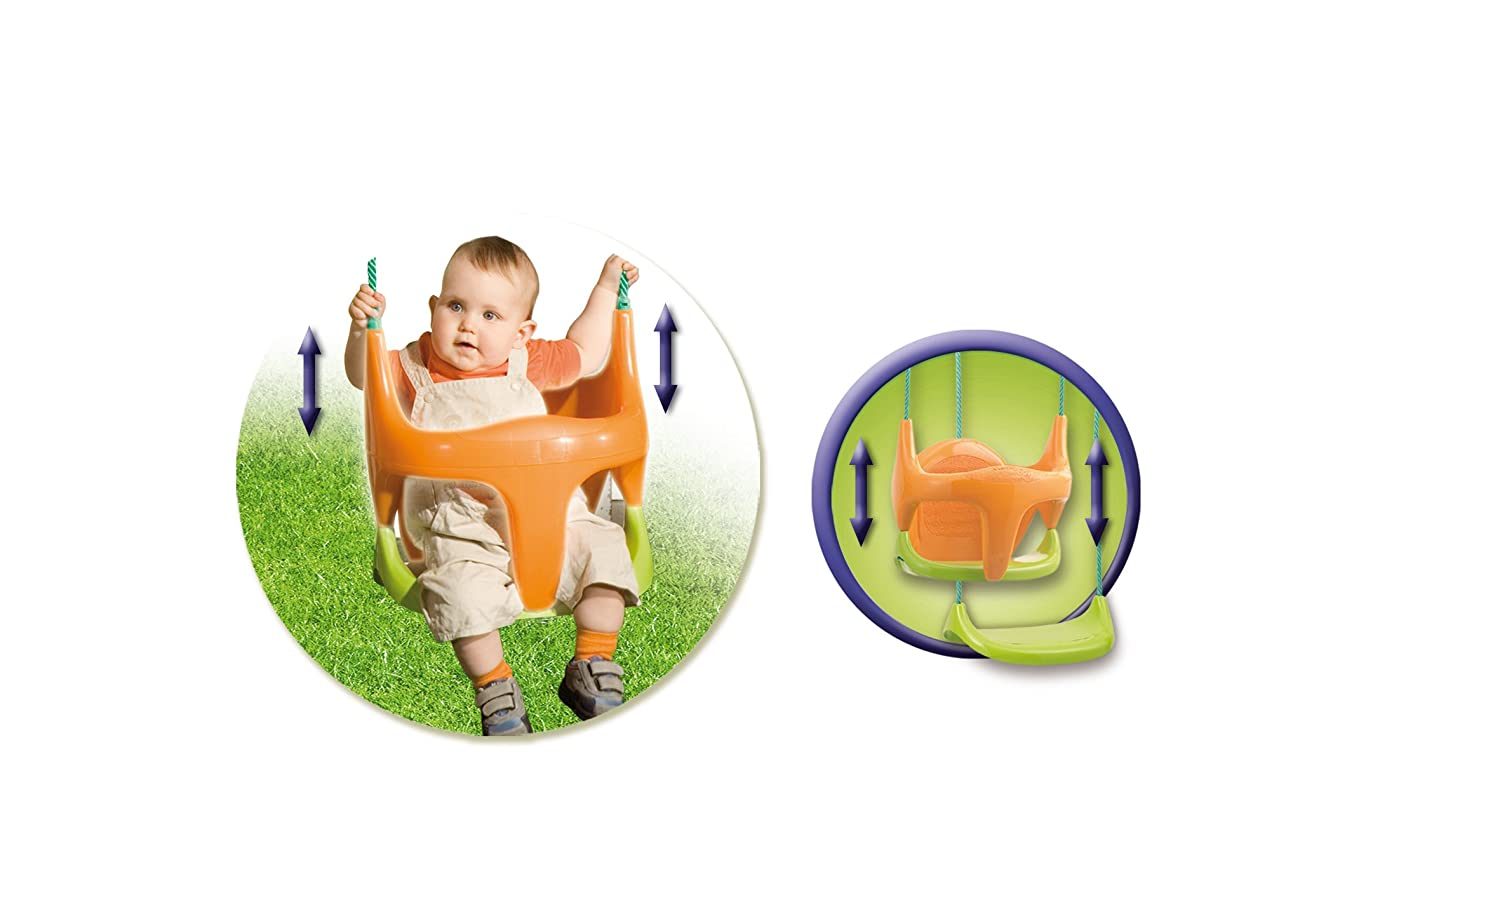 Smoby 031450 - Smoby Outdoor - 2 in 1 Baby-Schaukelsitz